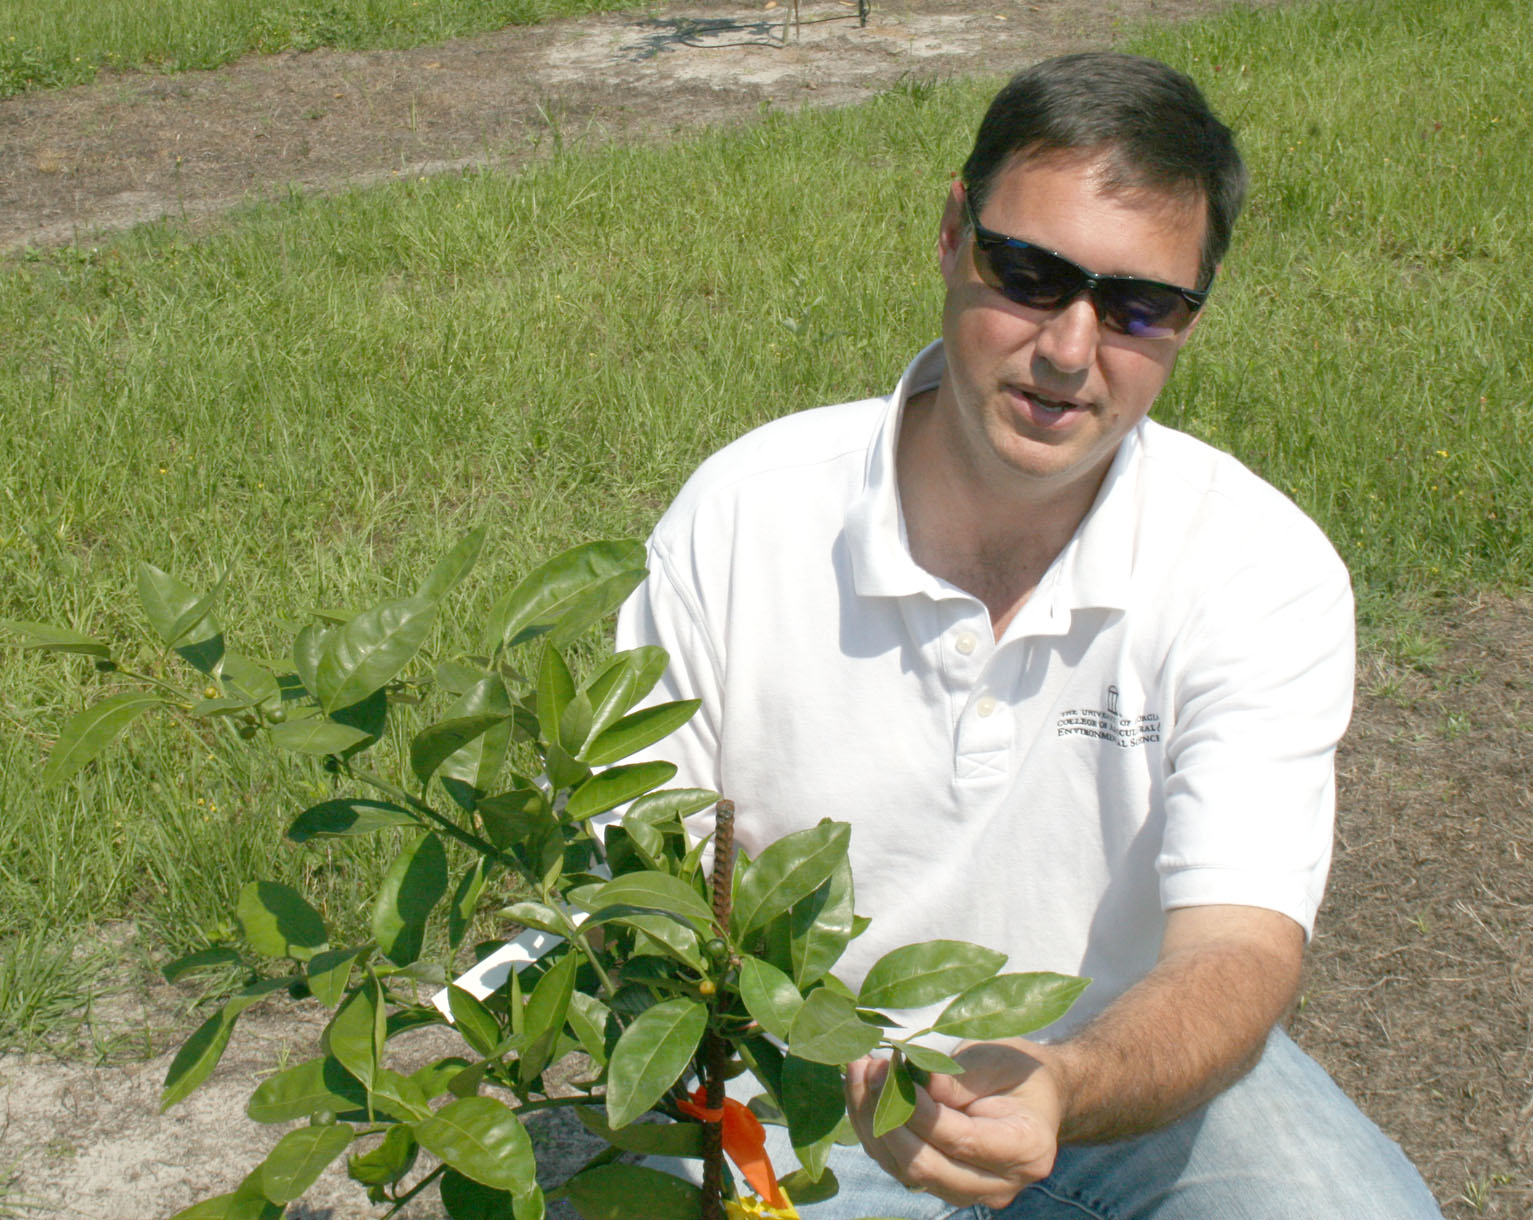 Lowndes County Extension Coordinator Jacob Price looks at a Satsuma orange plant on a private farm in Lowndes County in 2015.